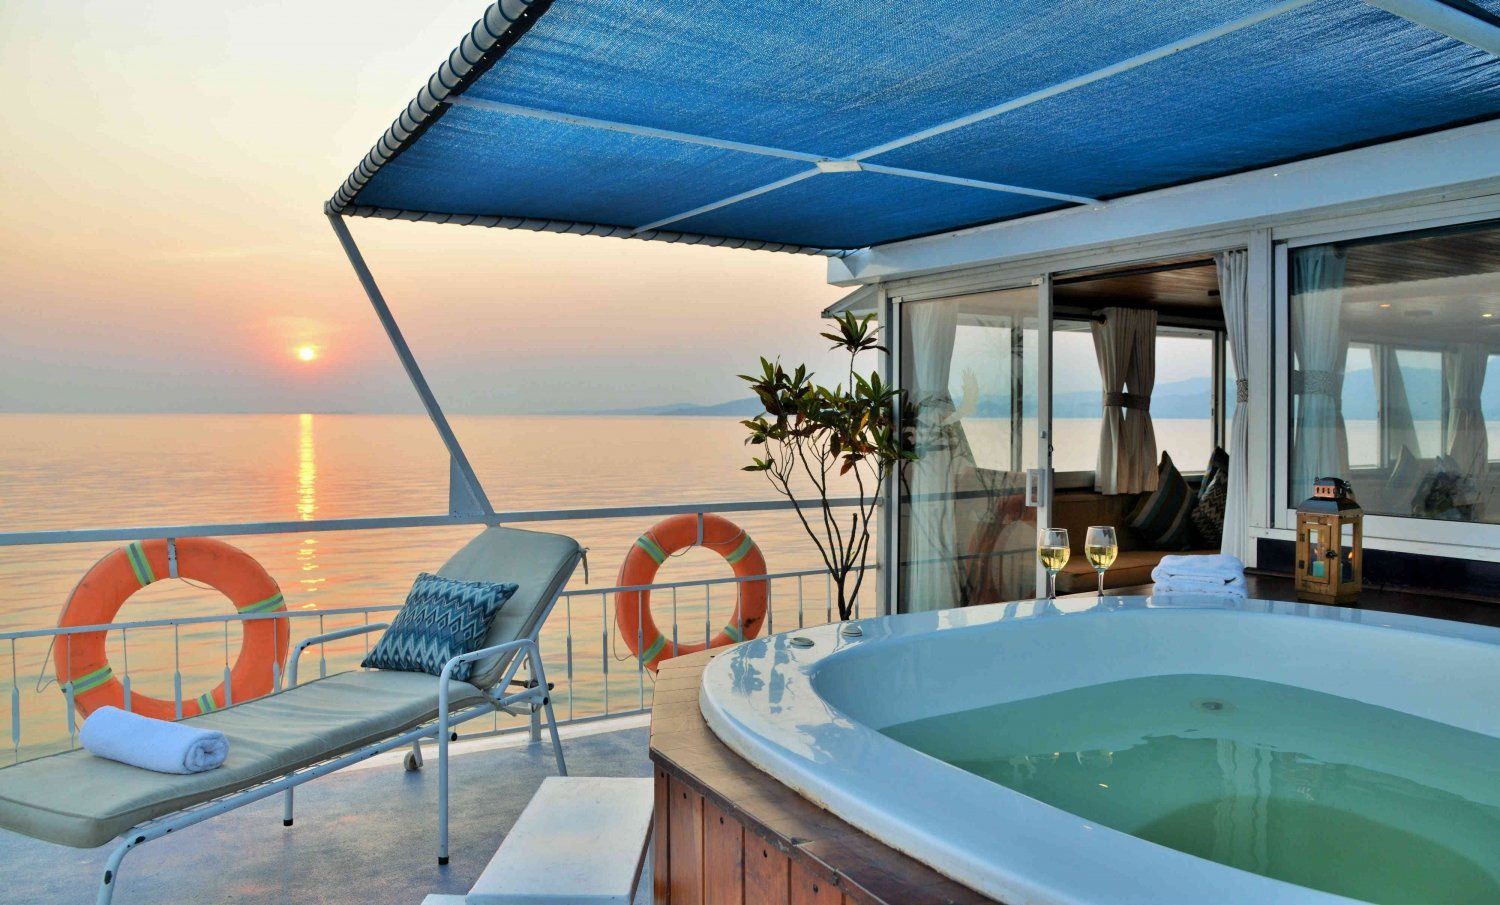 How To Choose The Right Houseboat For Your Next Vacation